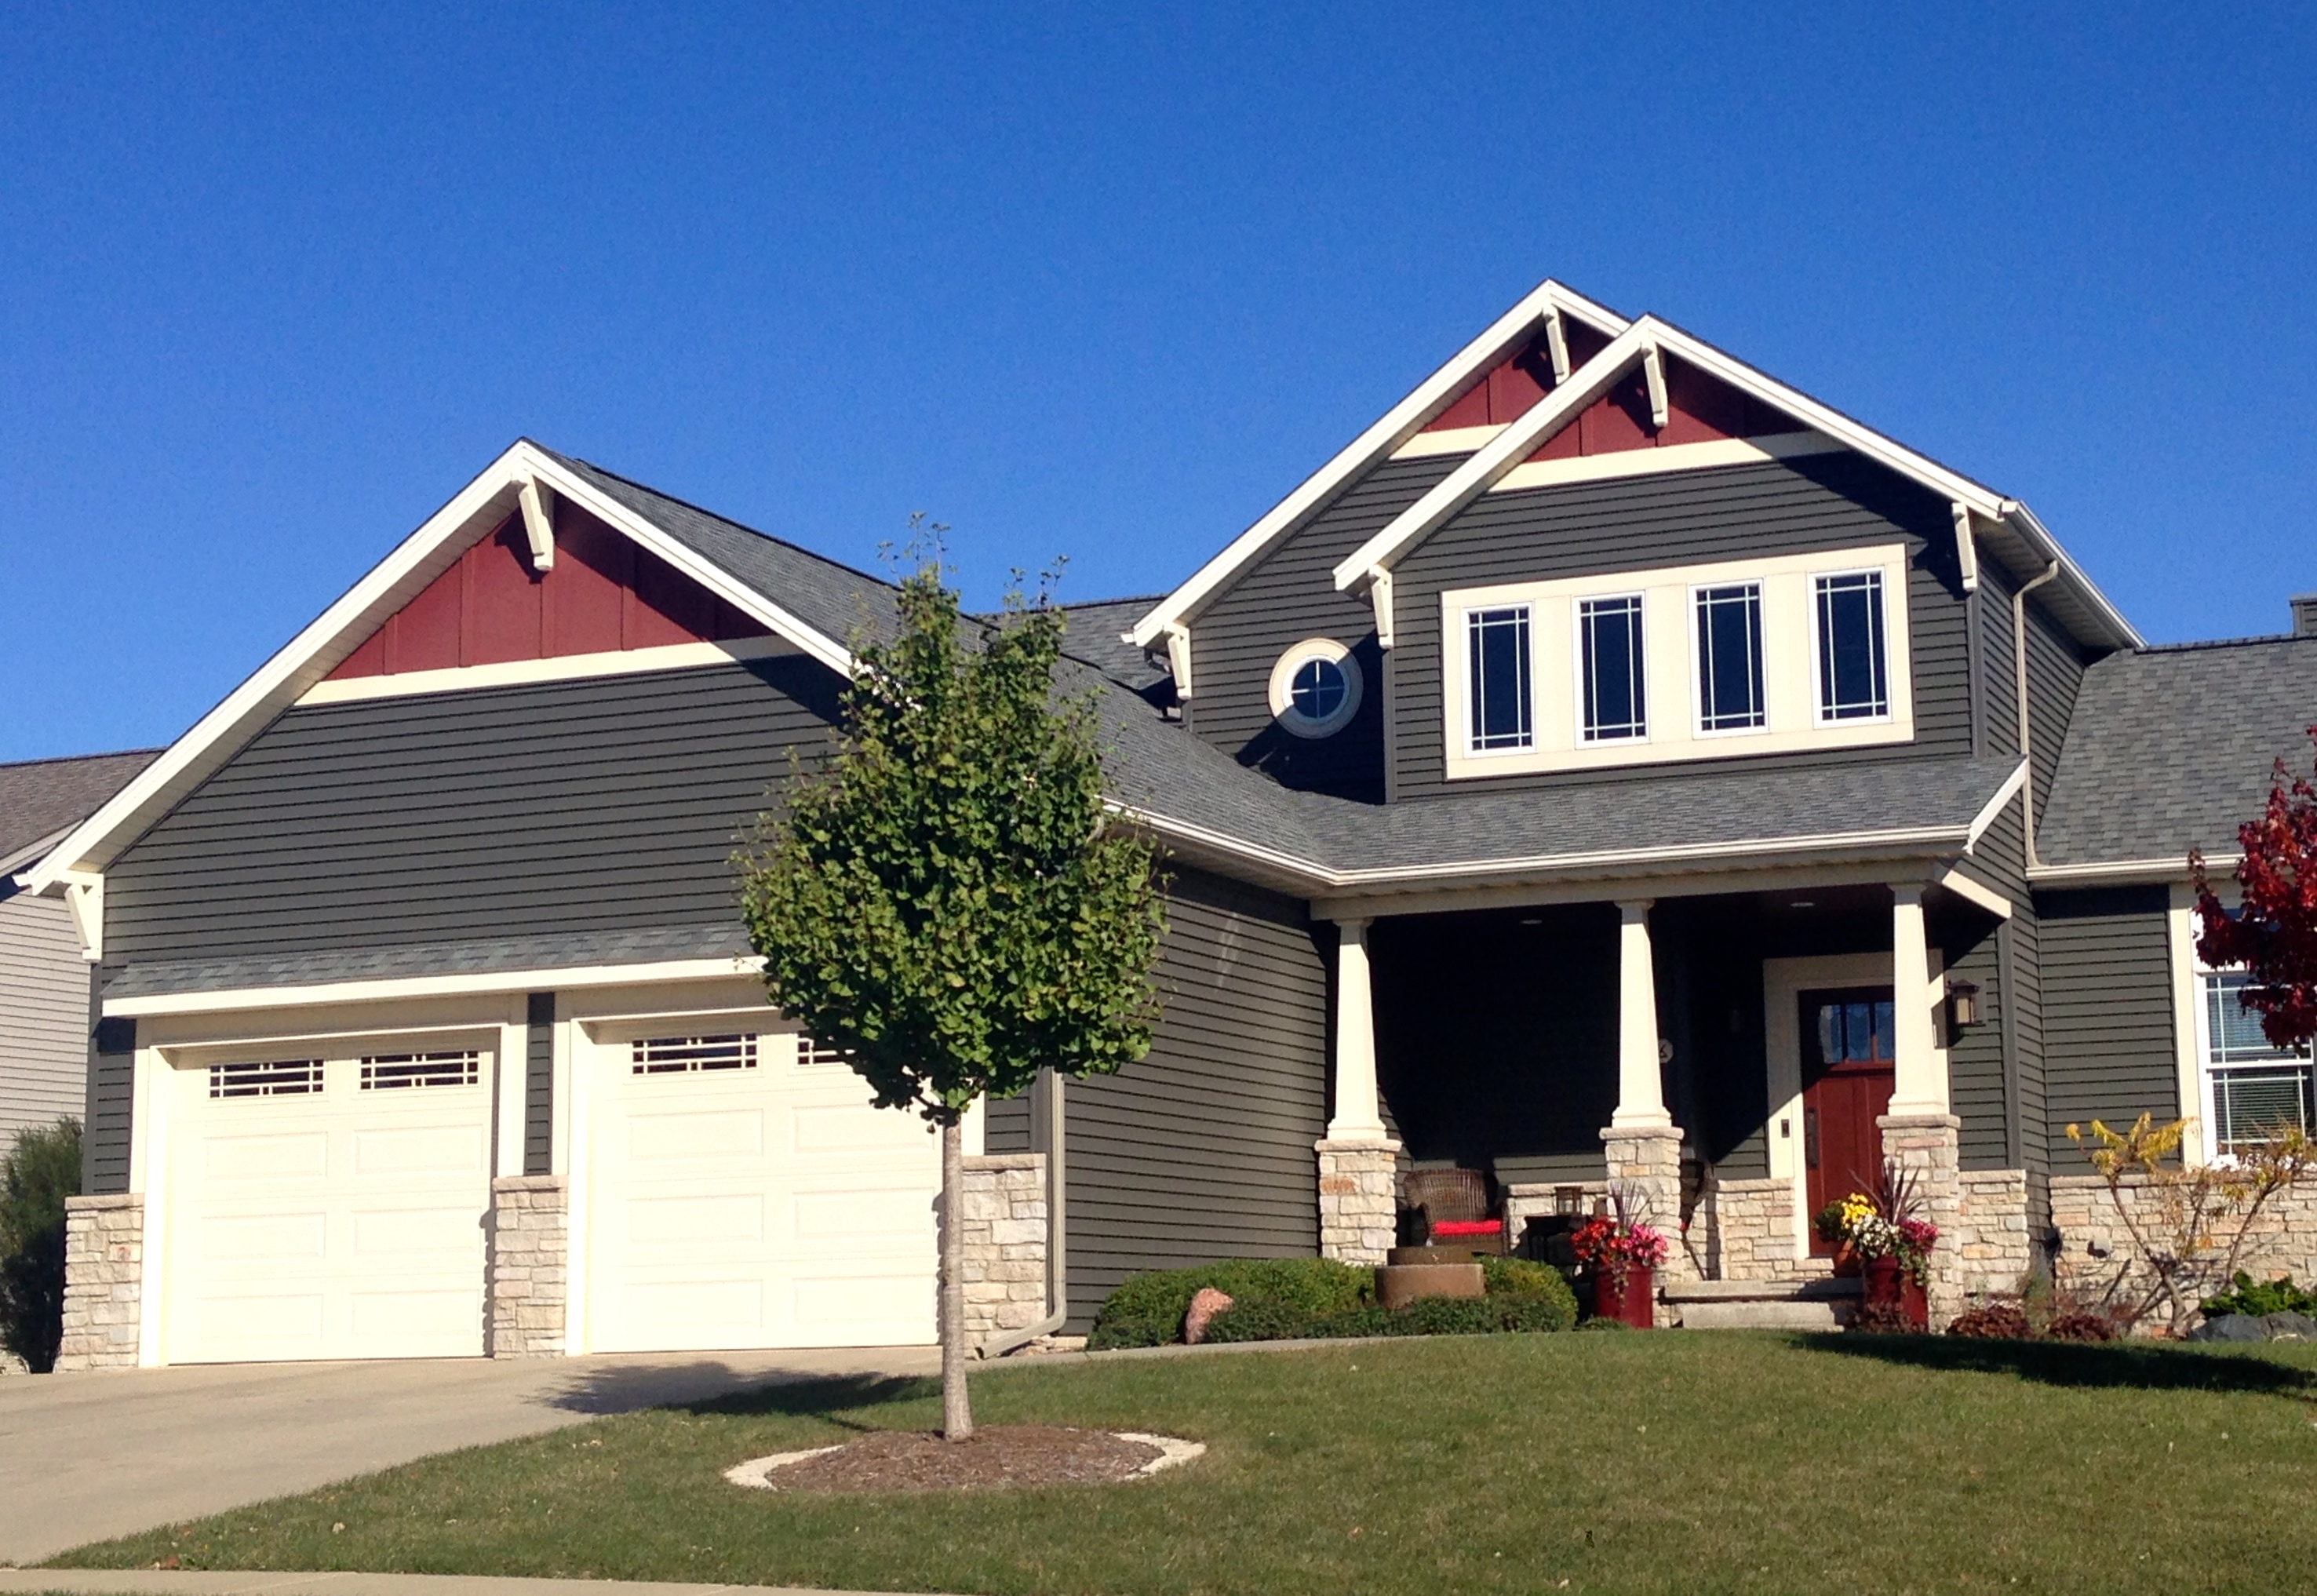 Dark siding mastic quest in misty shadow red decorative Gable accents